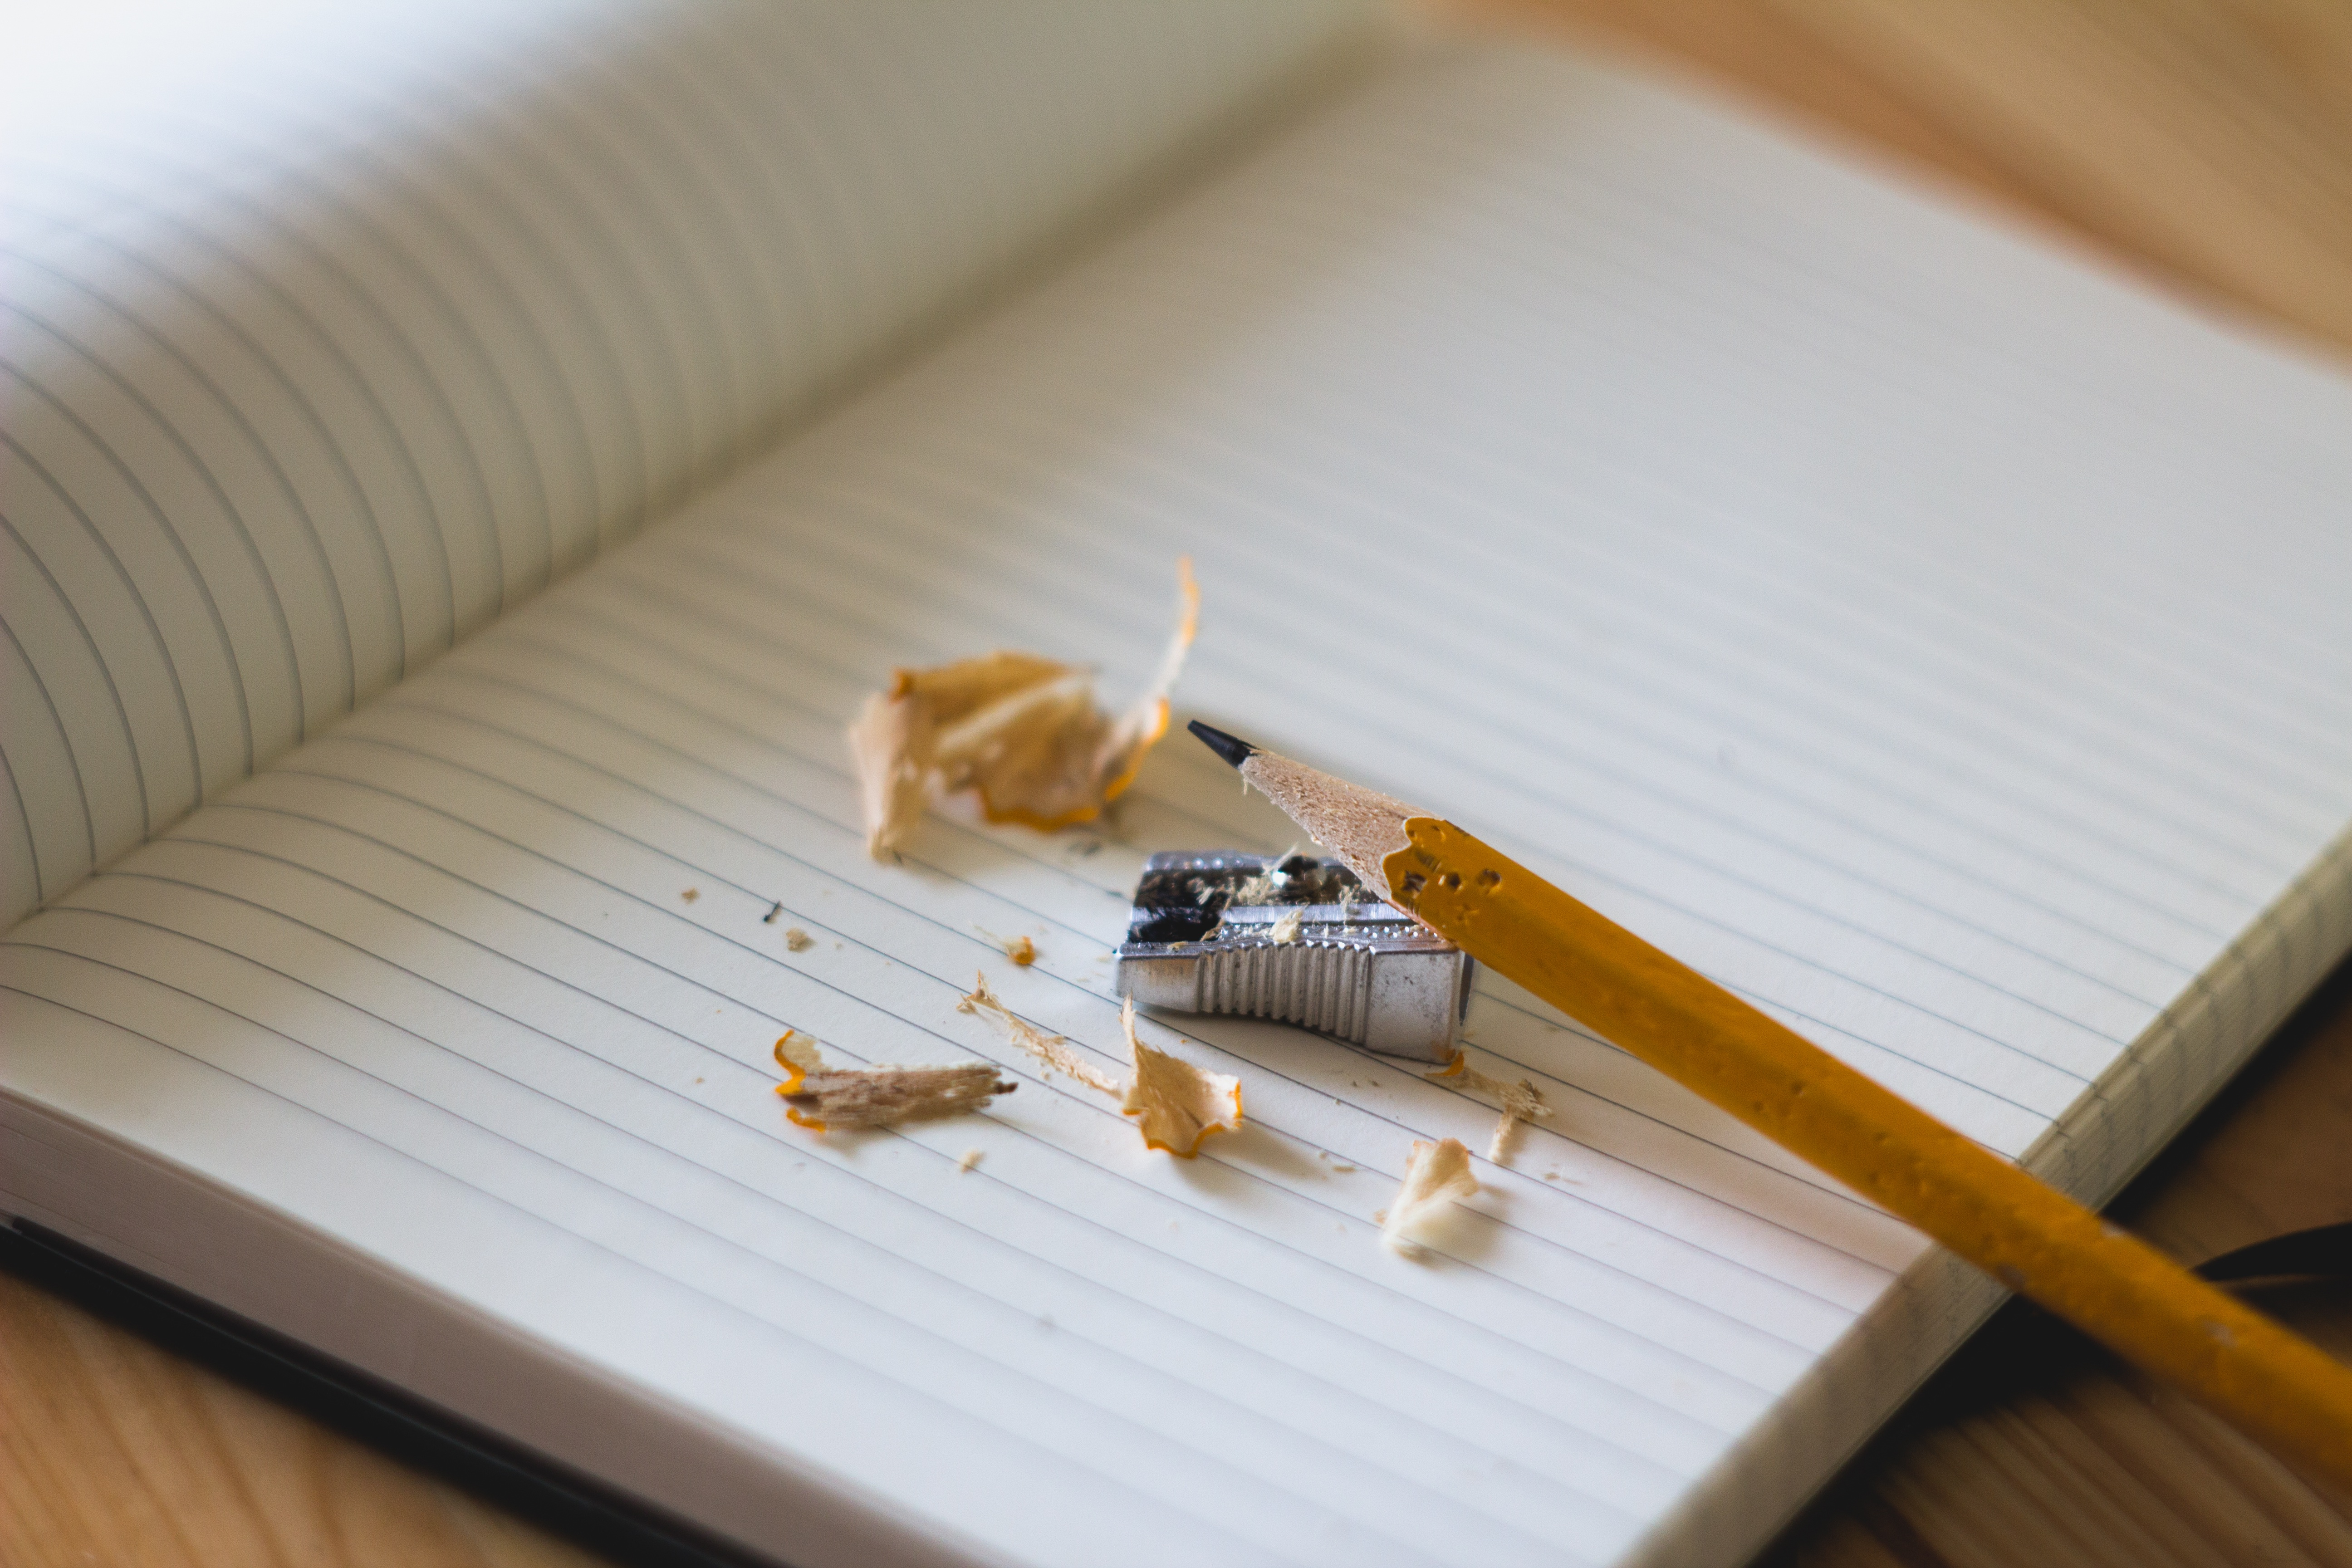 pencil laying on top of pencil shavings and a pencil sharpener on an open notebook at Infomedia's office